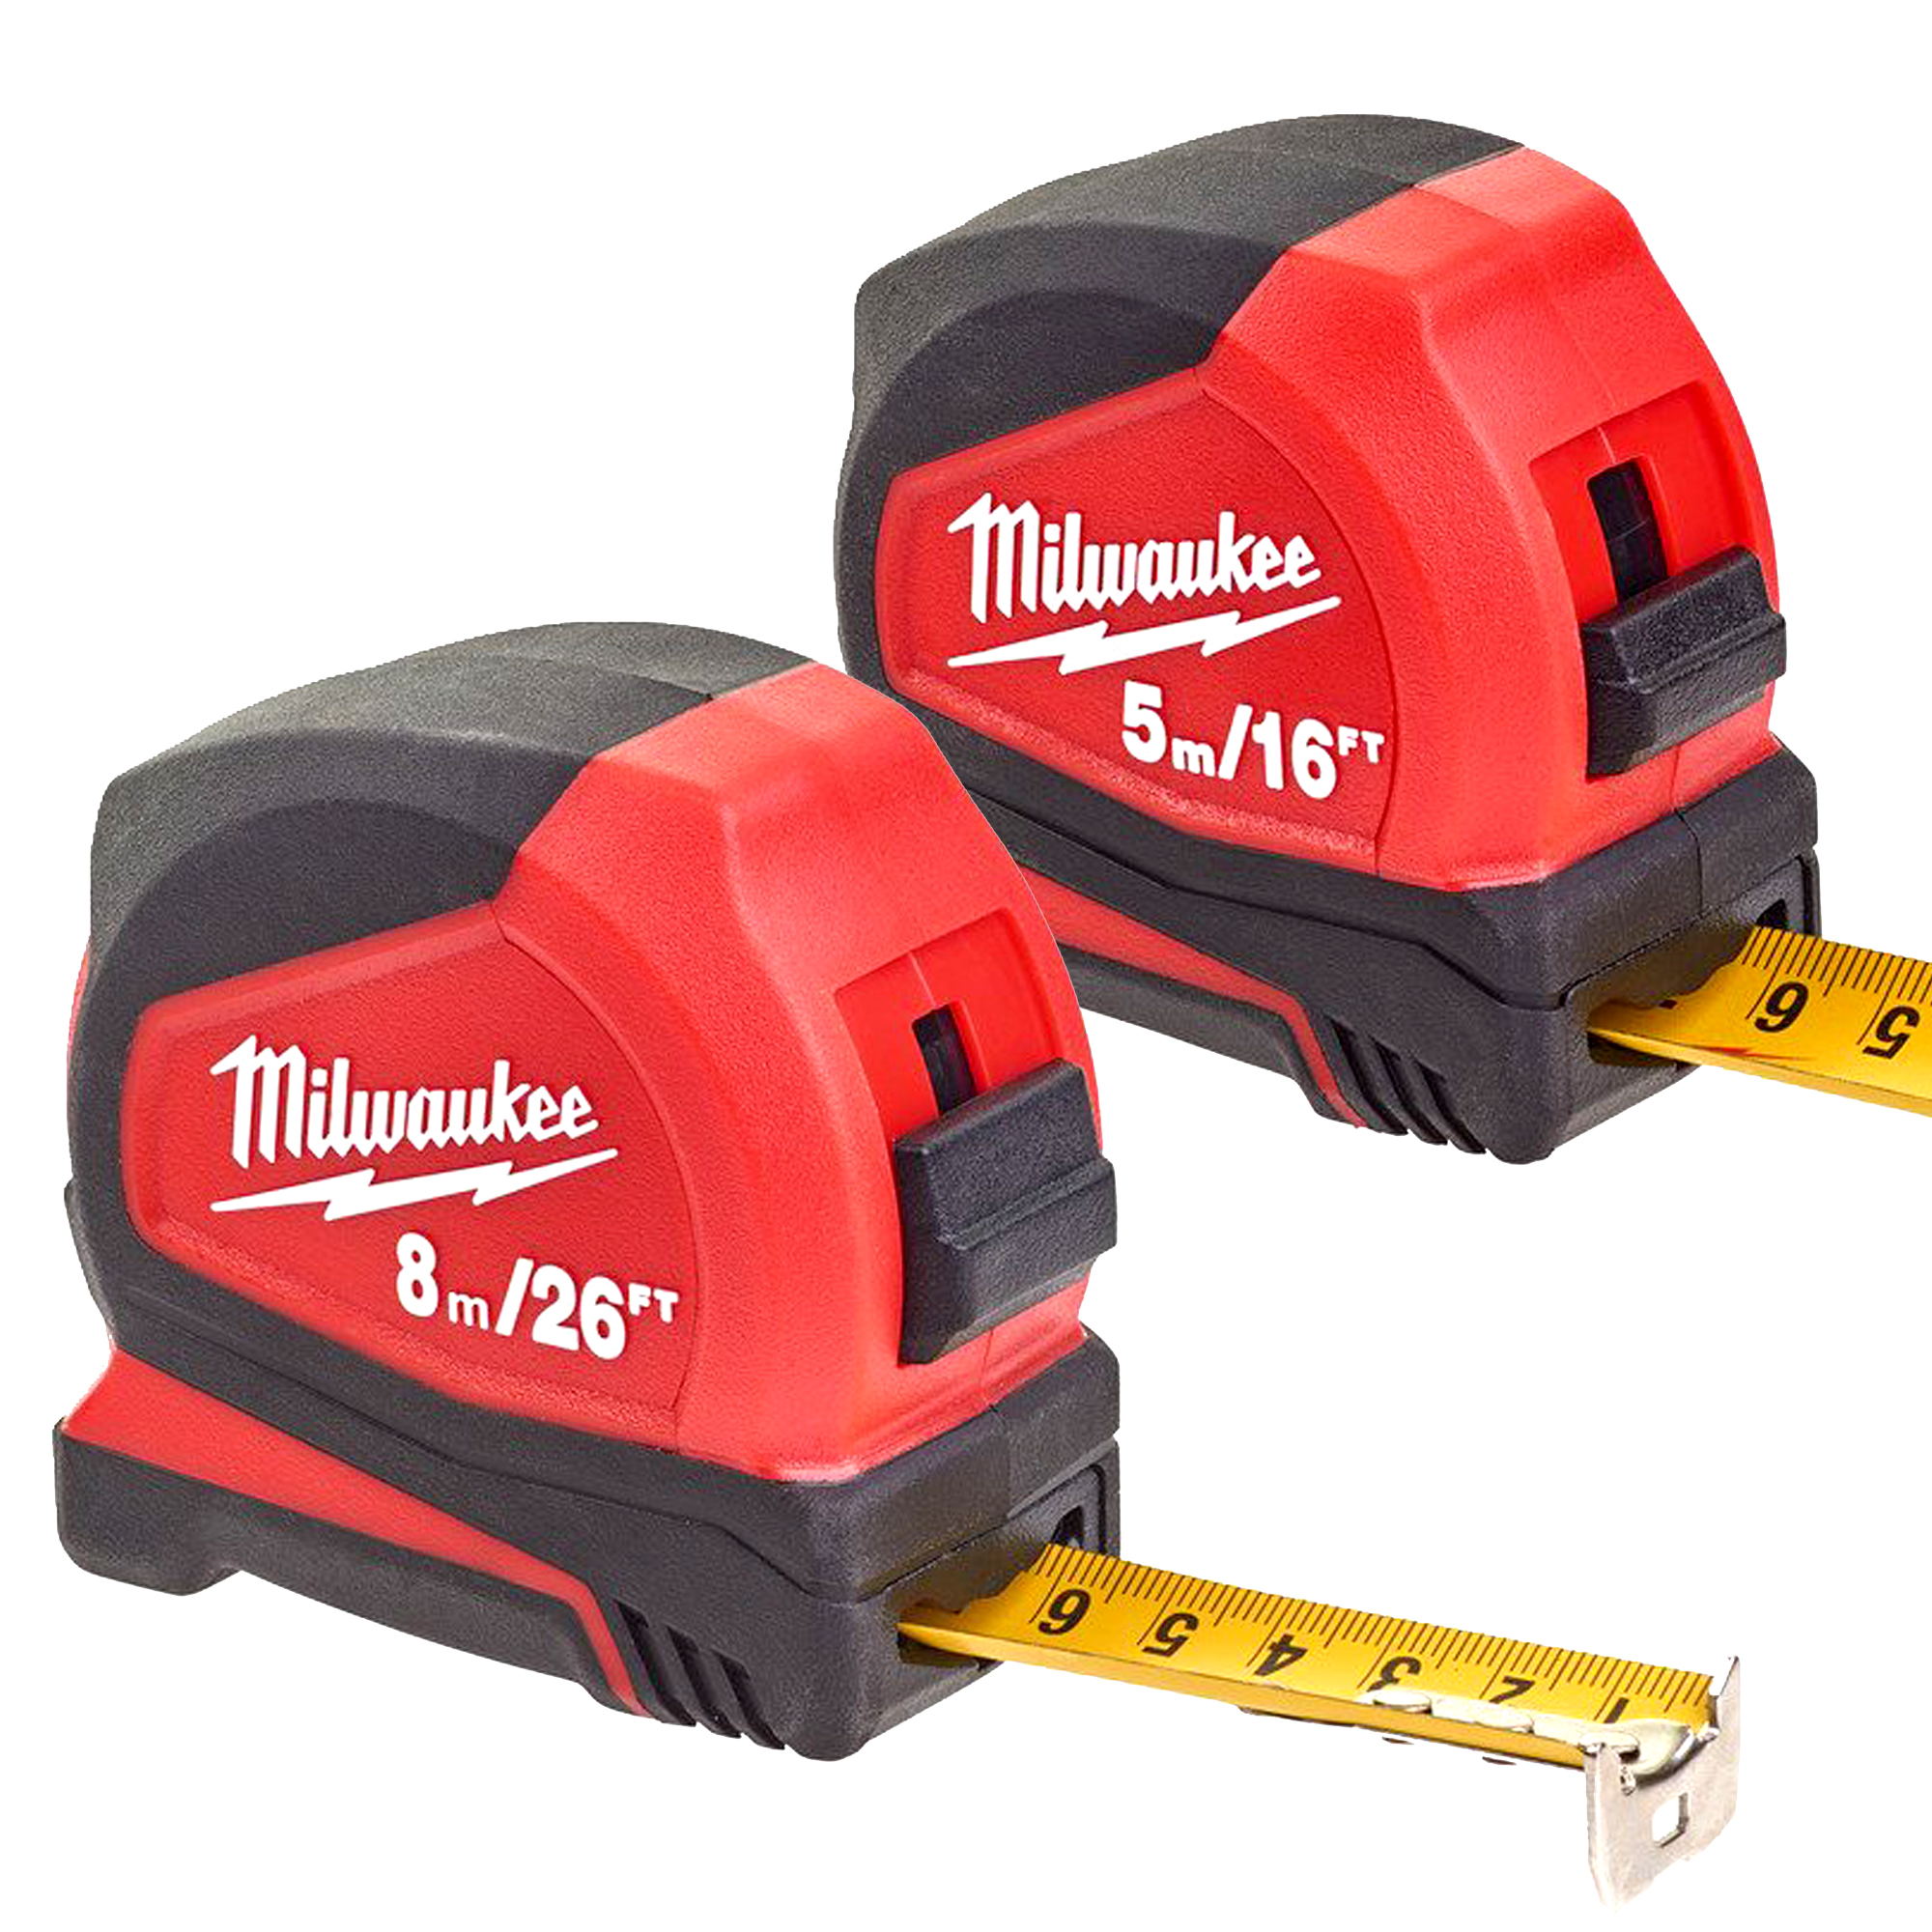 Milwaukee digital tape measure scrap cast iron radiators